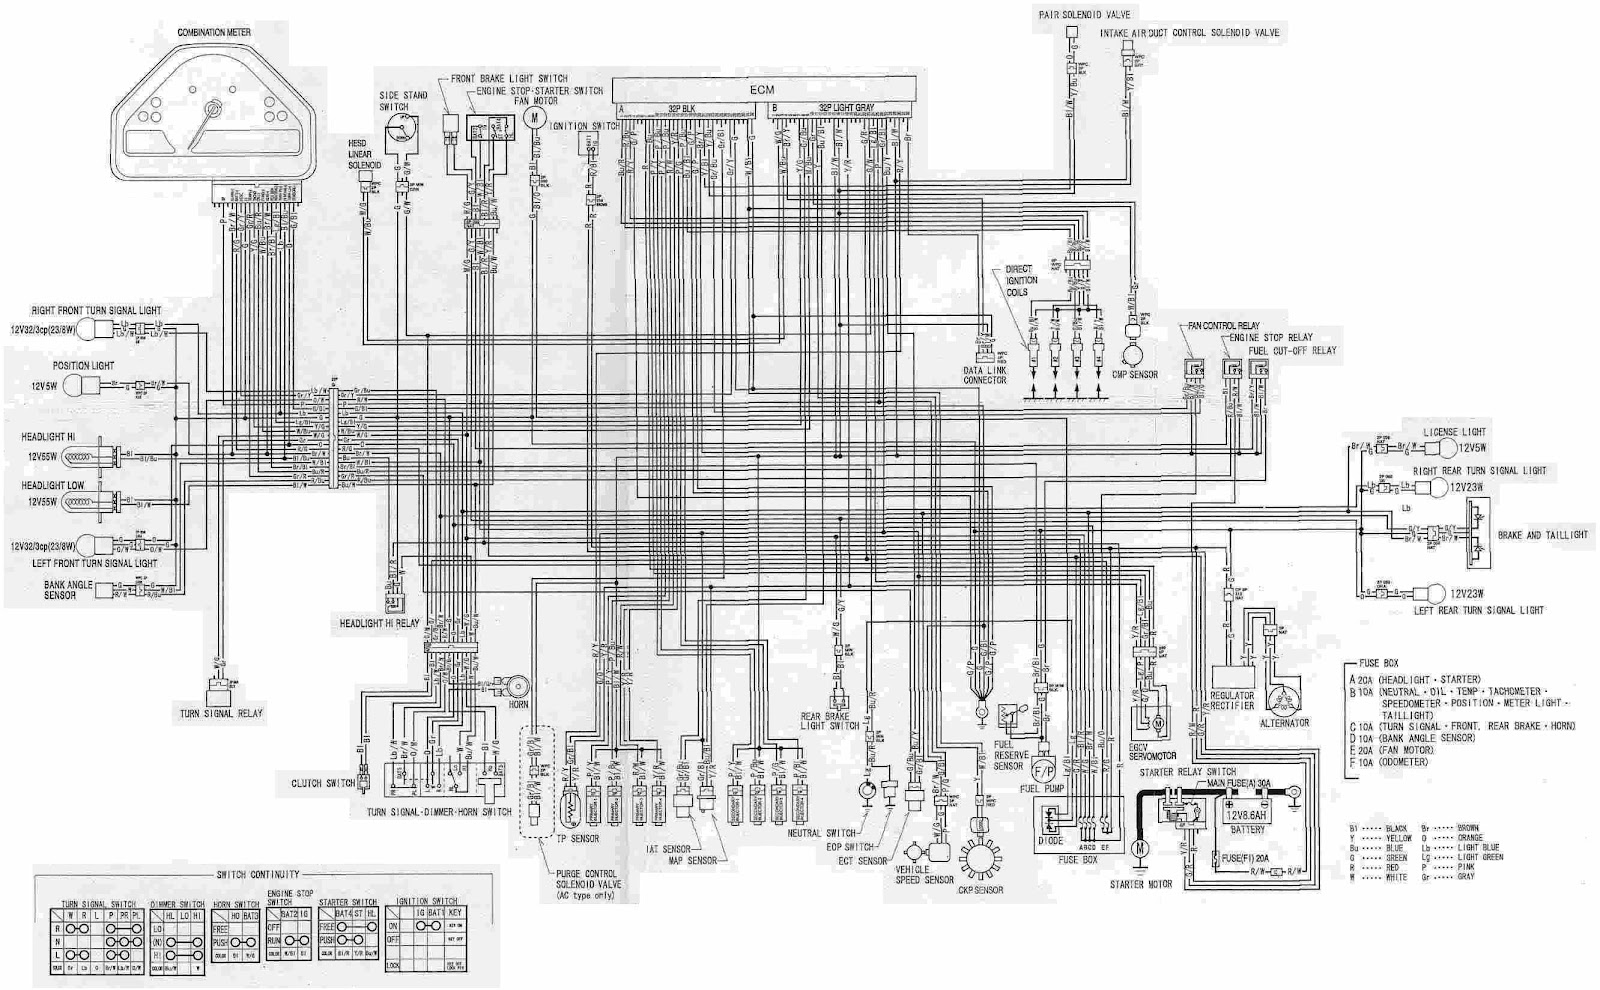 Wiring Diagram For Motorcycle 1997 Dodge Dakota Coil Honda Engine Schematics Auto Electrical